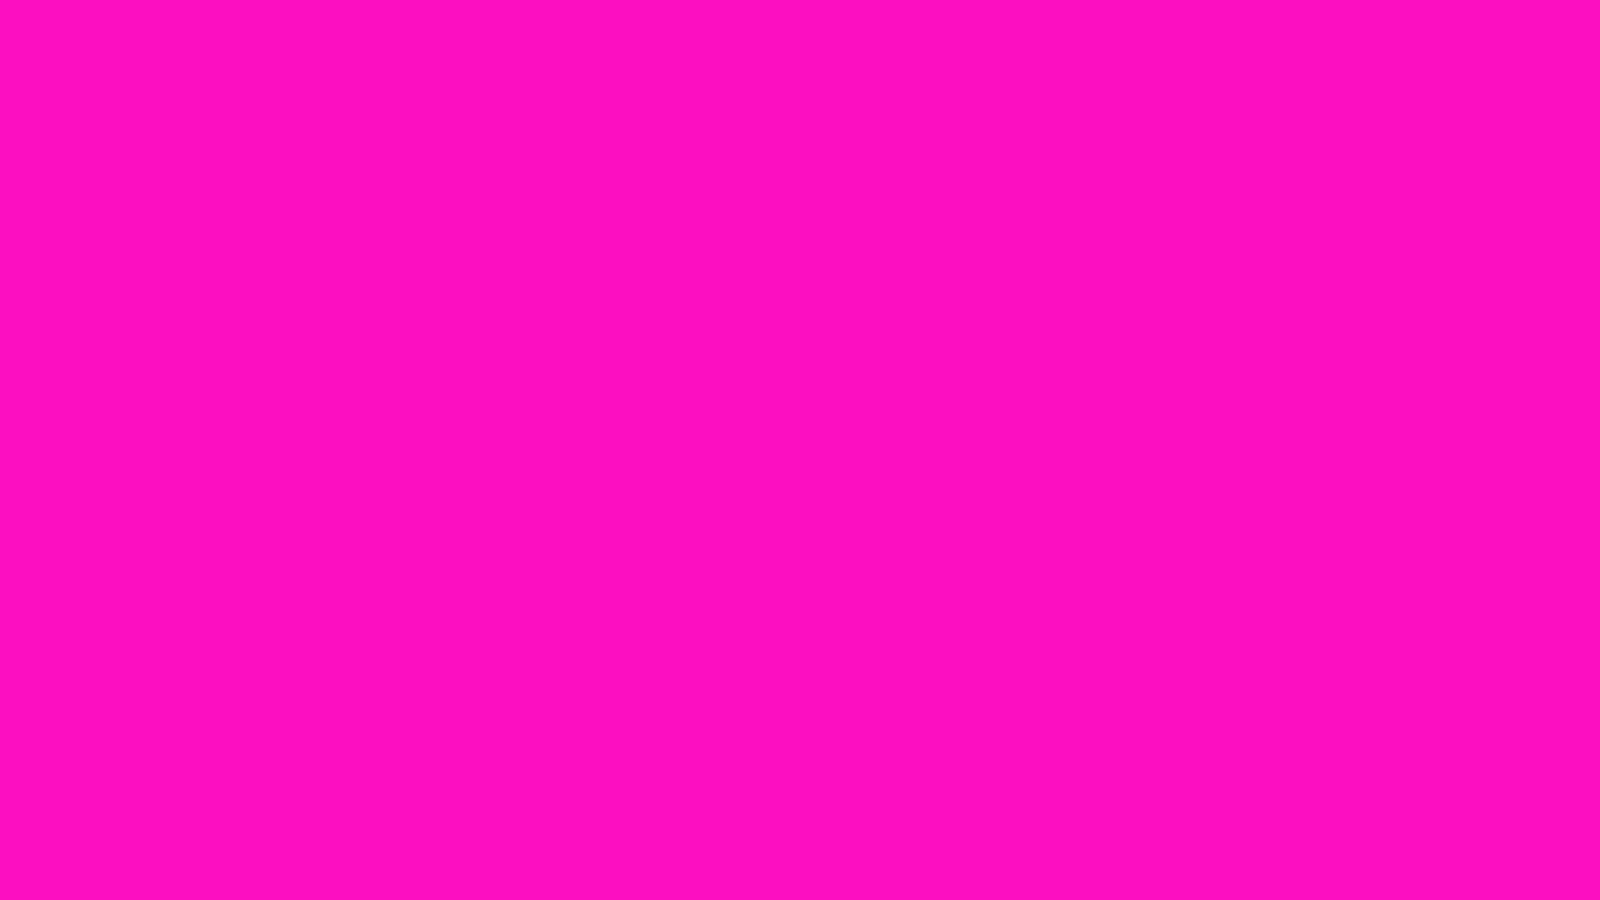 1600x900 Shocking Pink Solid Color Background